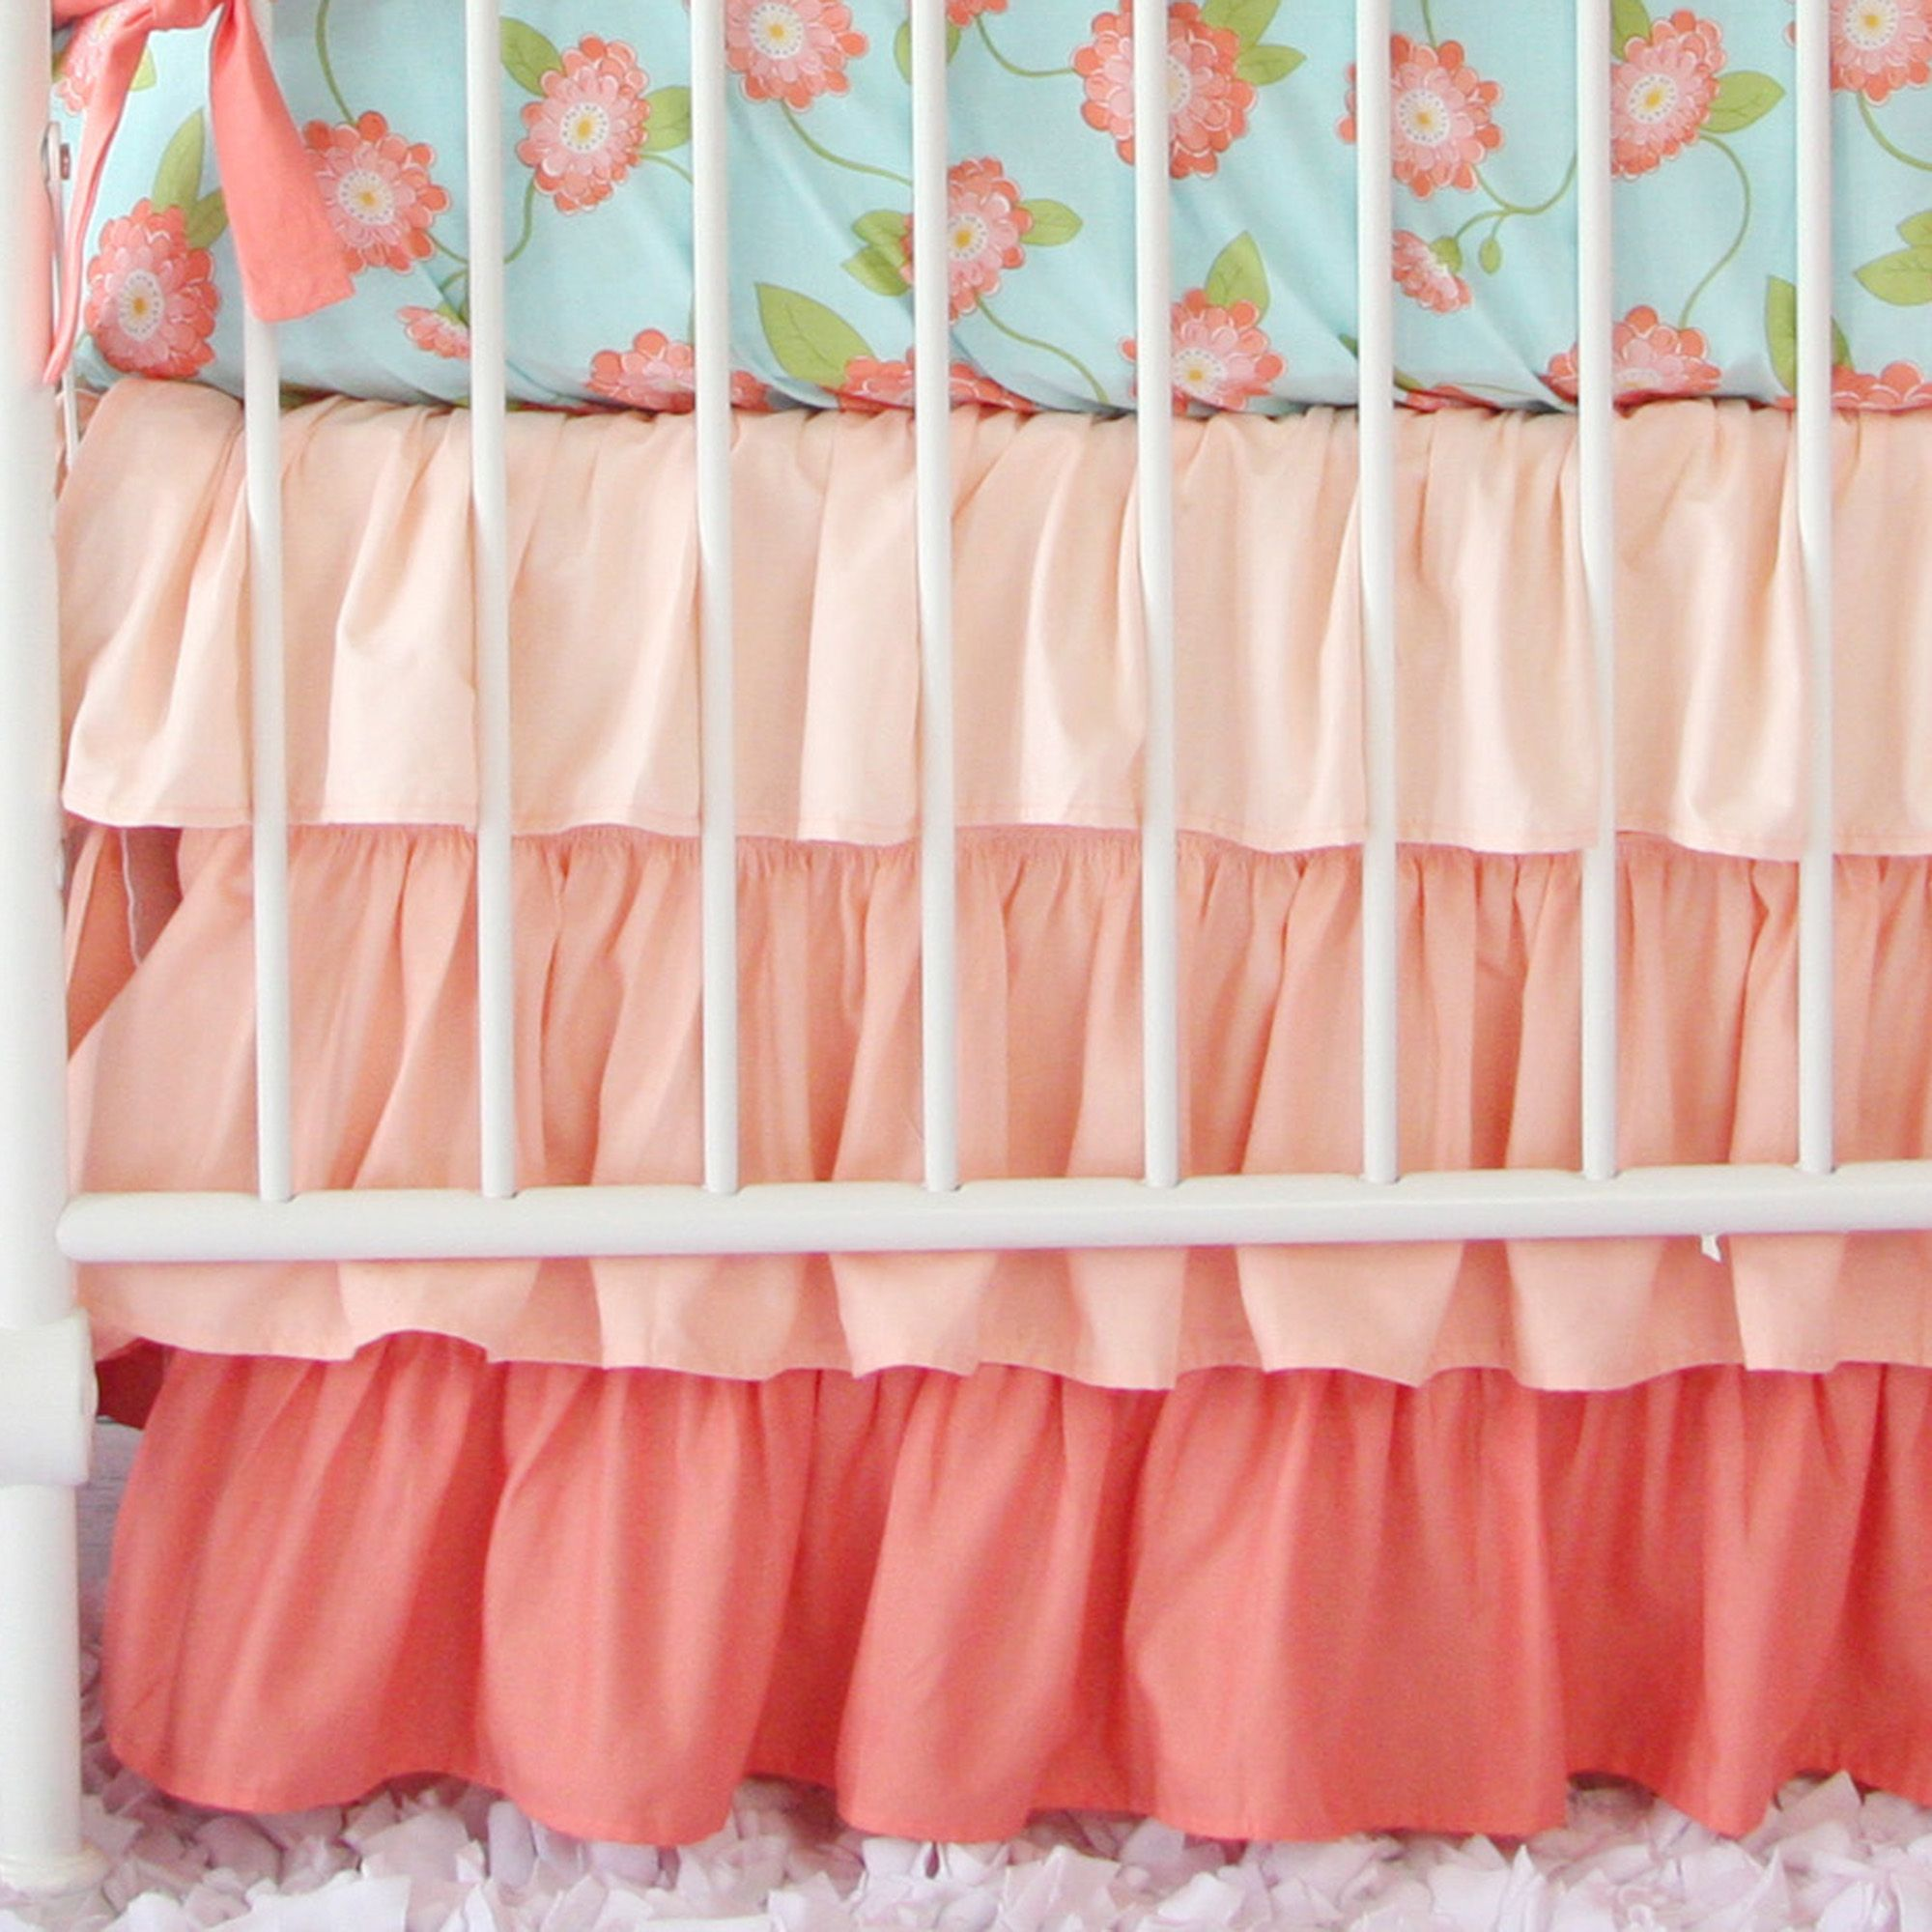 Coral crib skirts pair perfectly with blue